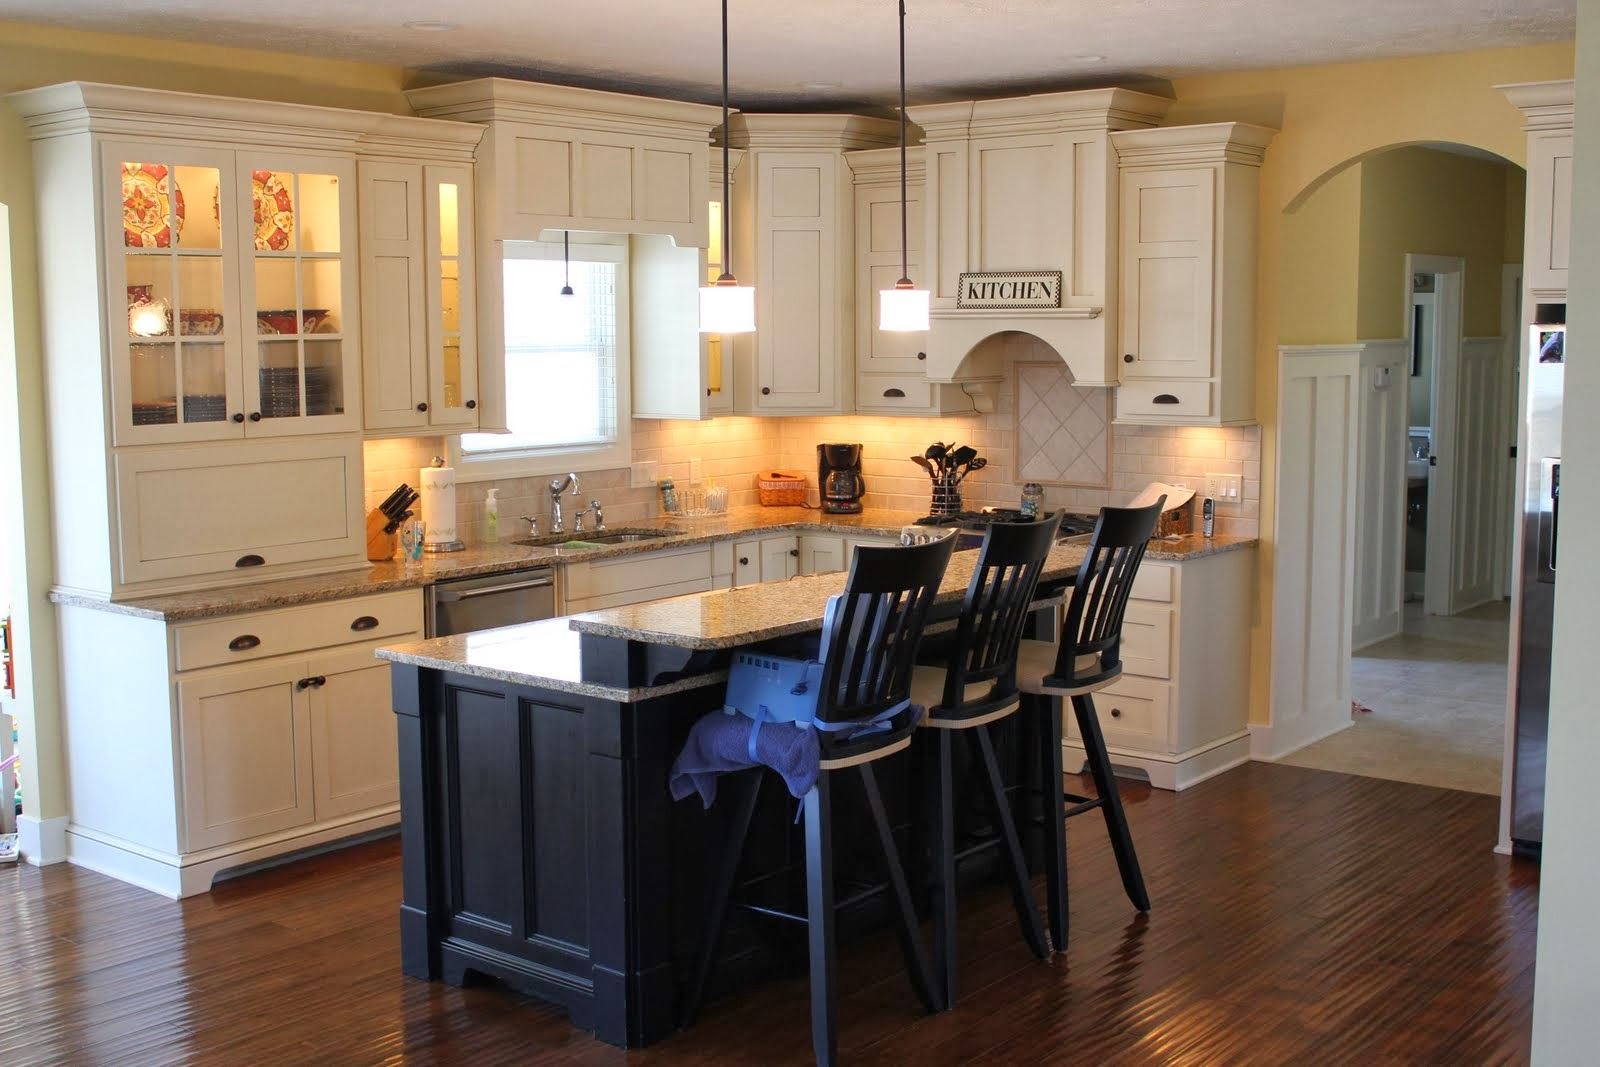 C b i d home decor and design mellow yellow - Benjamin moore paint colors for kitchen ...